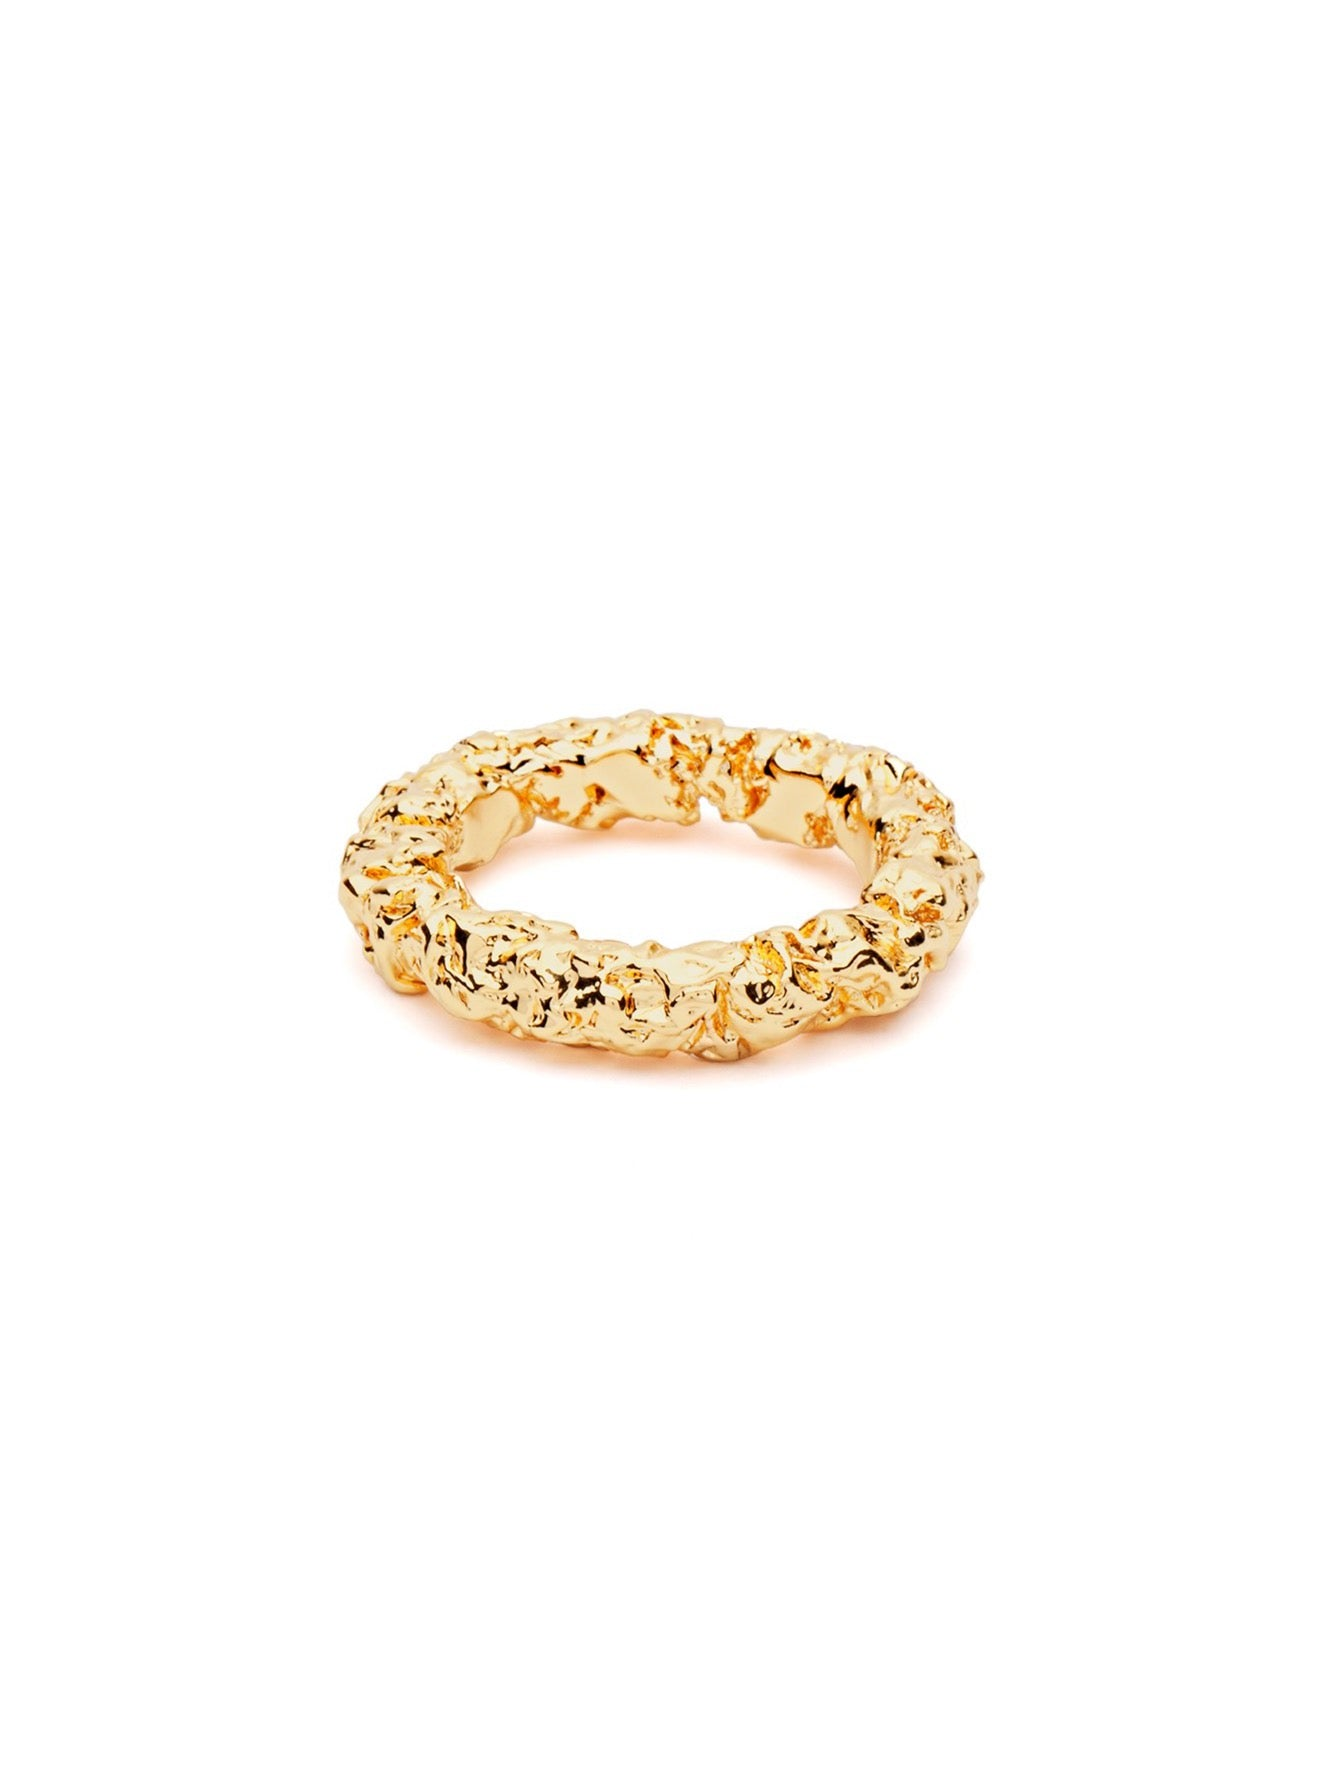 Amber Sceats Frances Ring in Gold